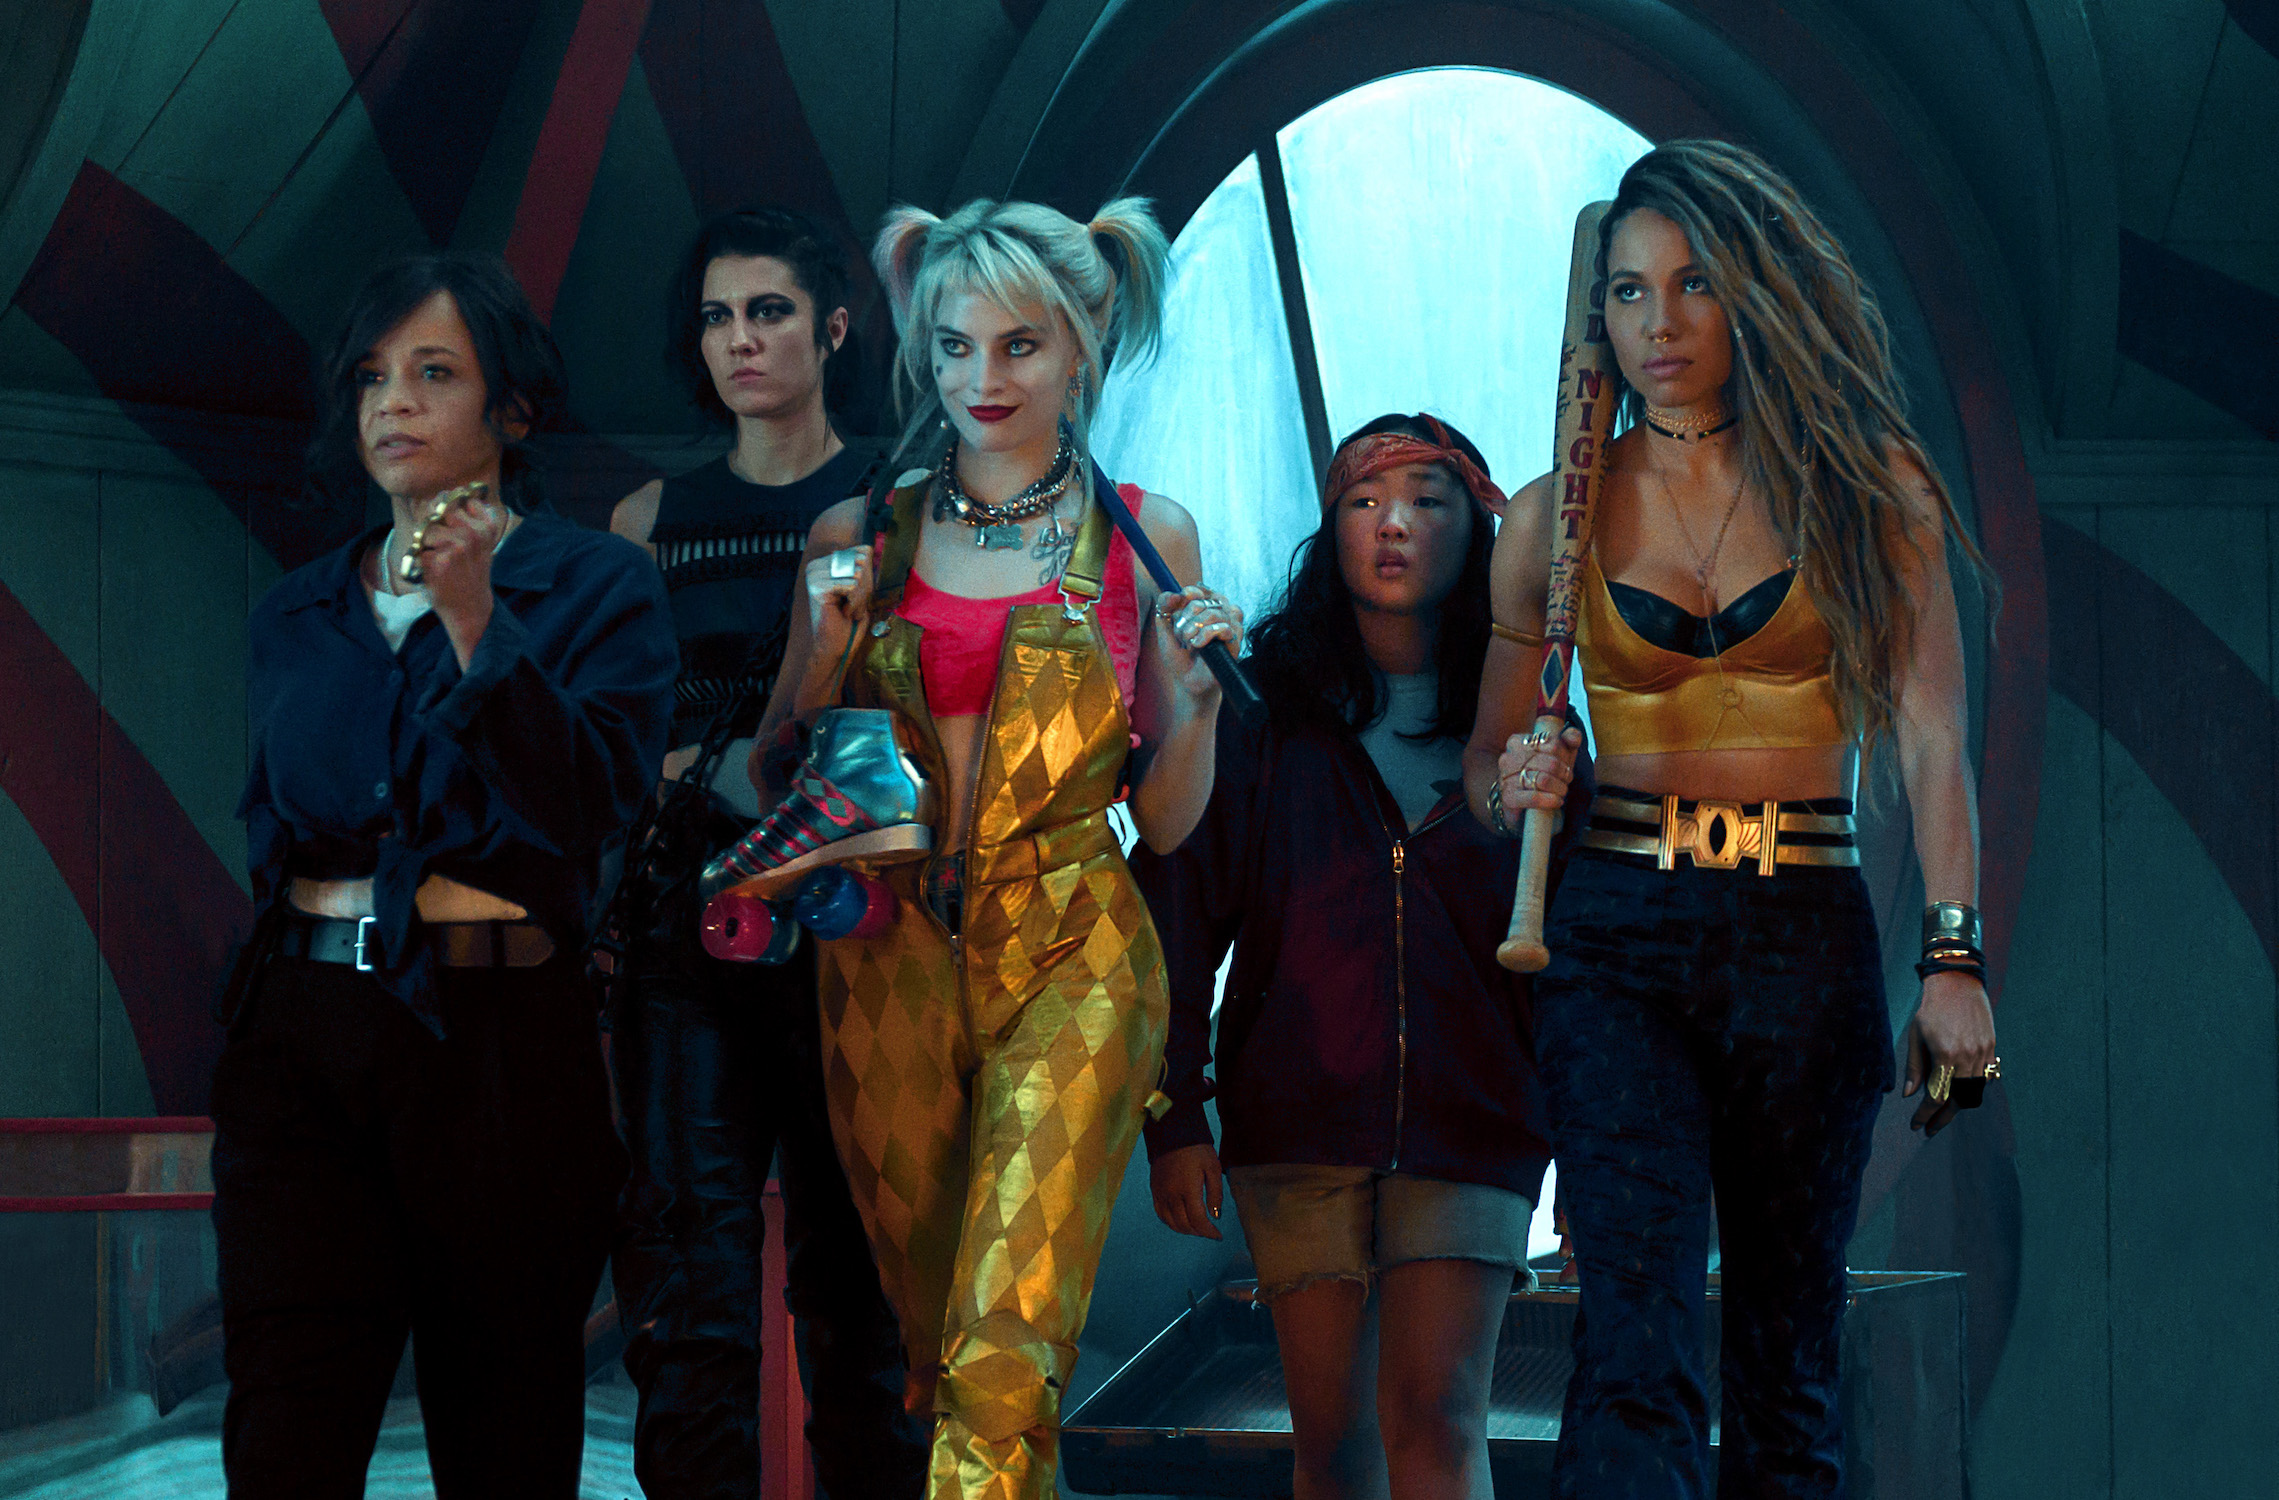 TRAILER: Here's Your First Look at Rosie Perez as Detective Renee Montaya in 'Birds of Prey'